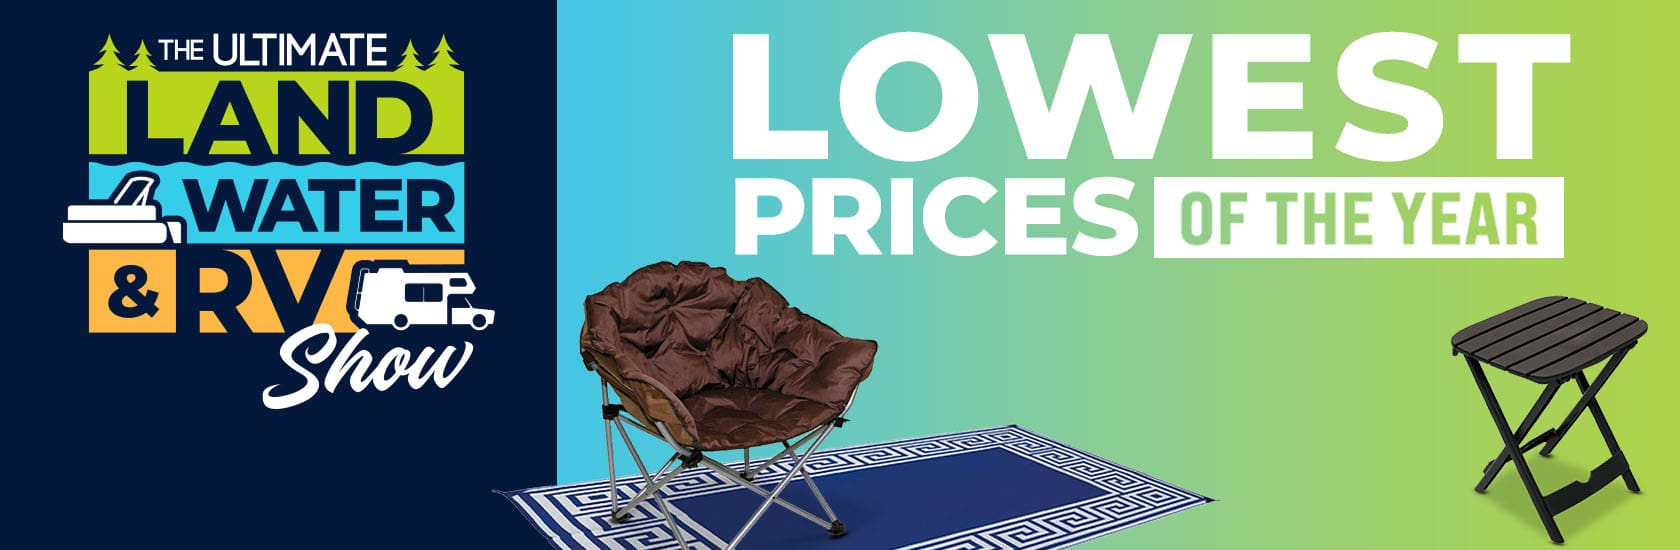 Lowest prices of the year on chairs, tables, patio mats & more